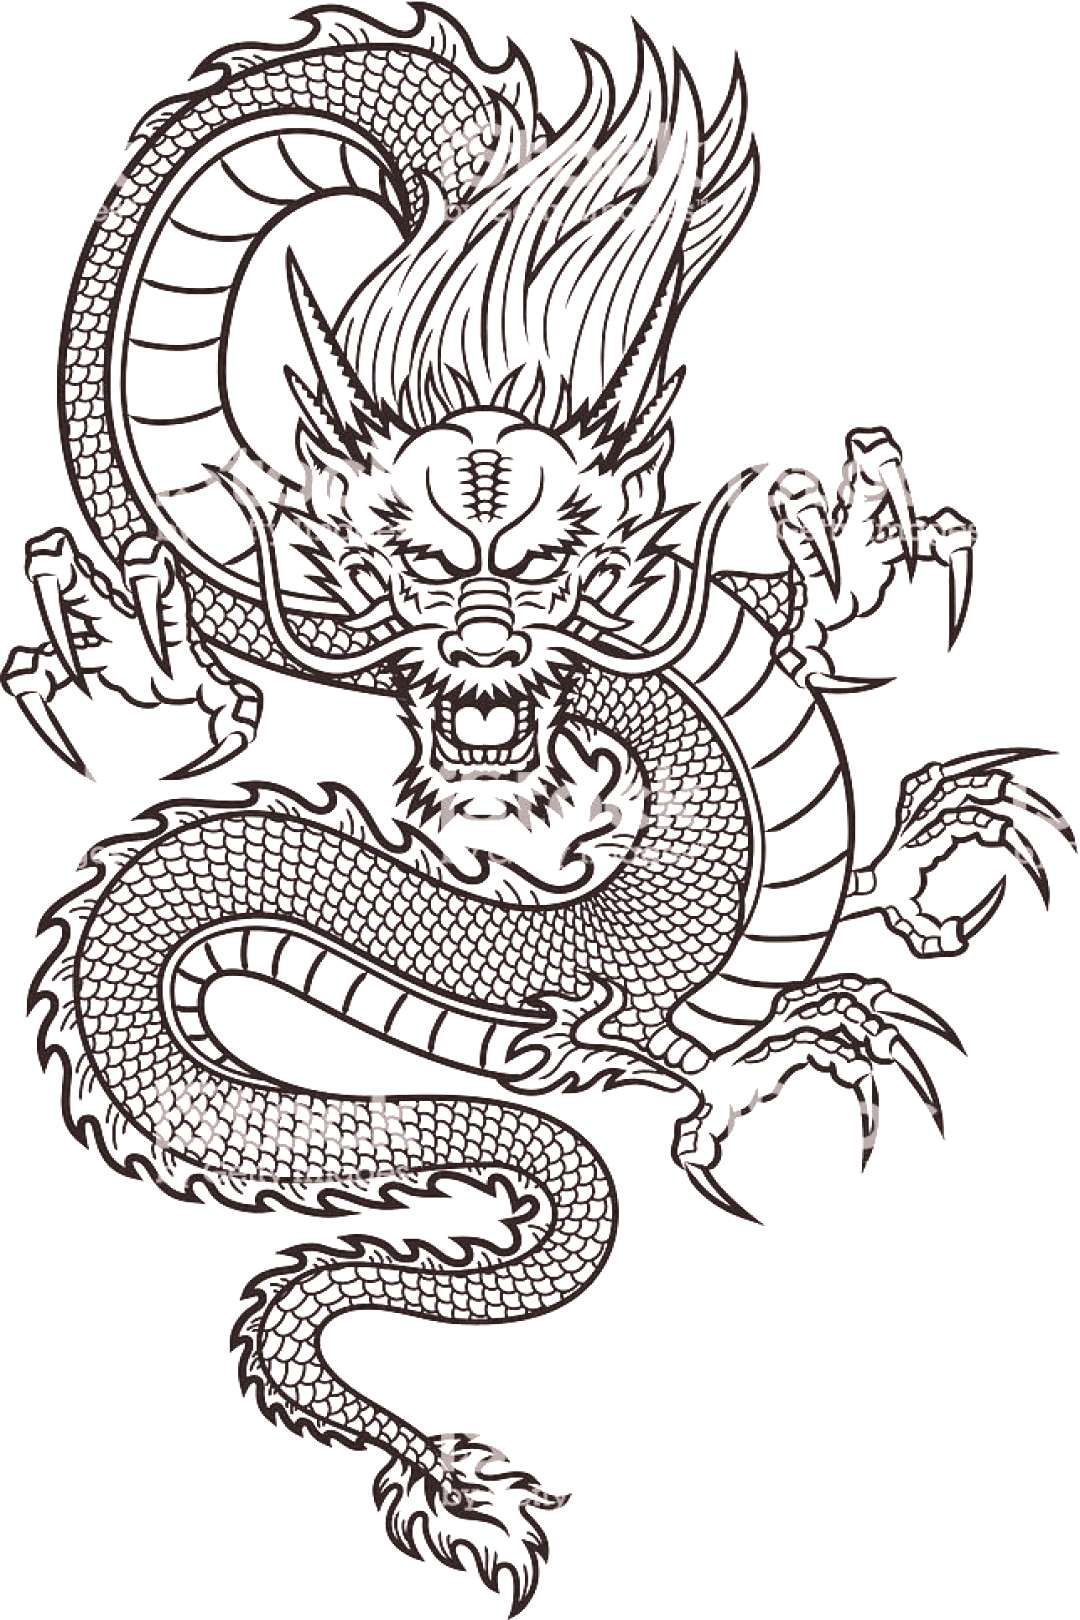 Traditional Asian Dragon. This is vector illustration ideal for a ... - Chinese dragon royalty fre